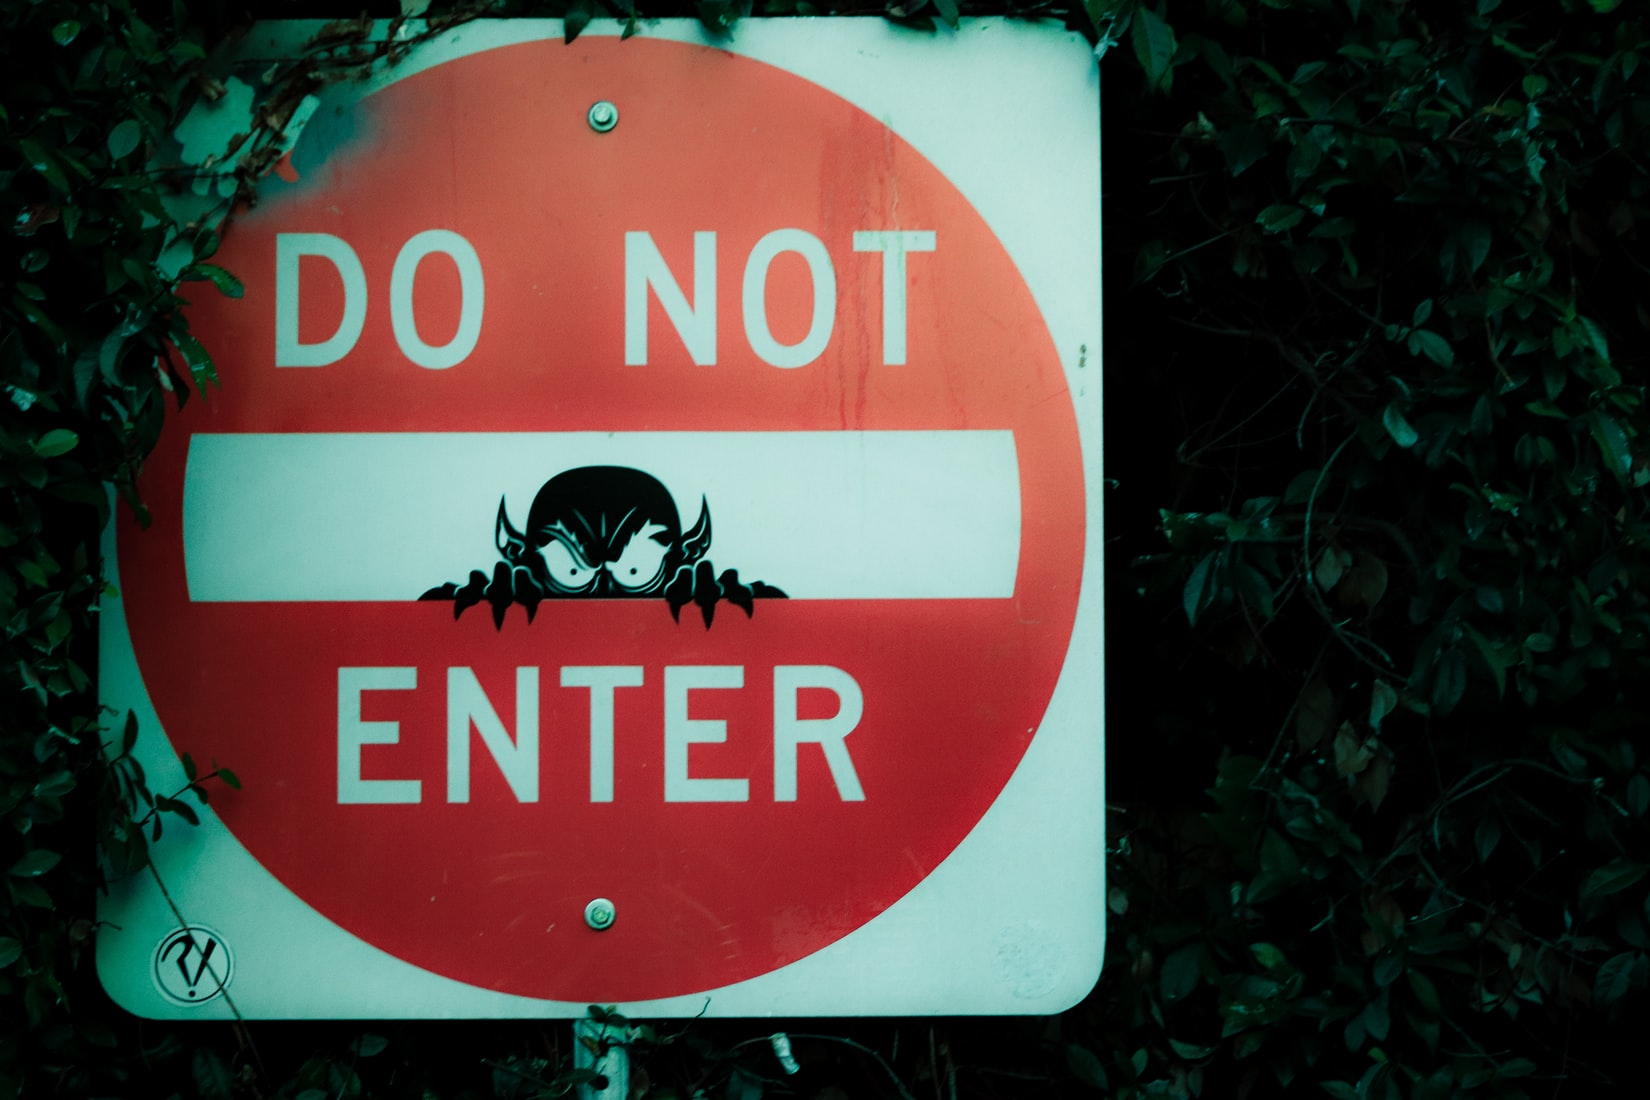 Red and white Do Not Enter street sign with drawing of demon between words